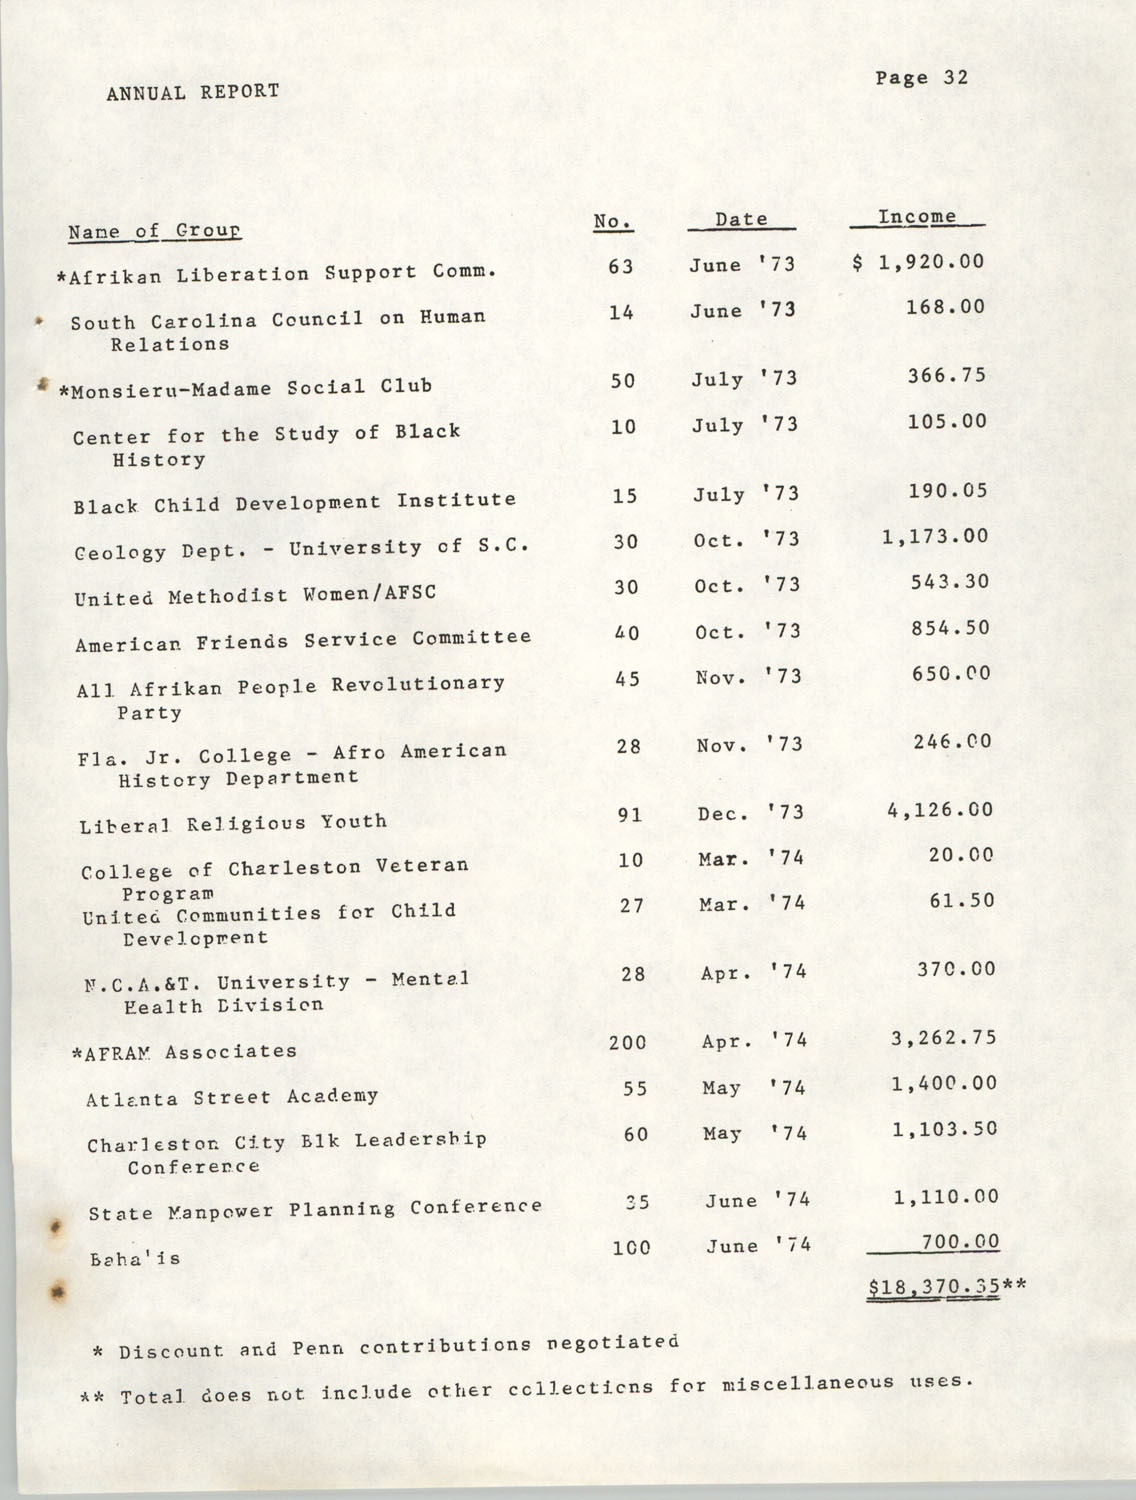 Annual Report, Penn Community Services, 1974, Page 32